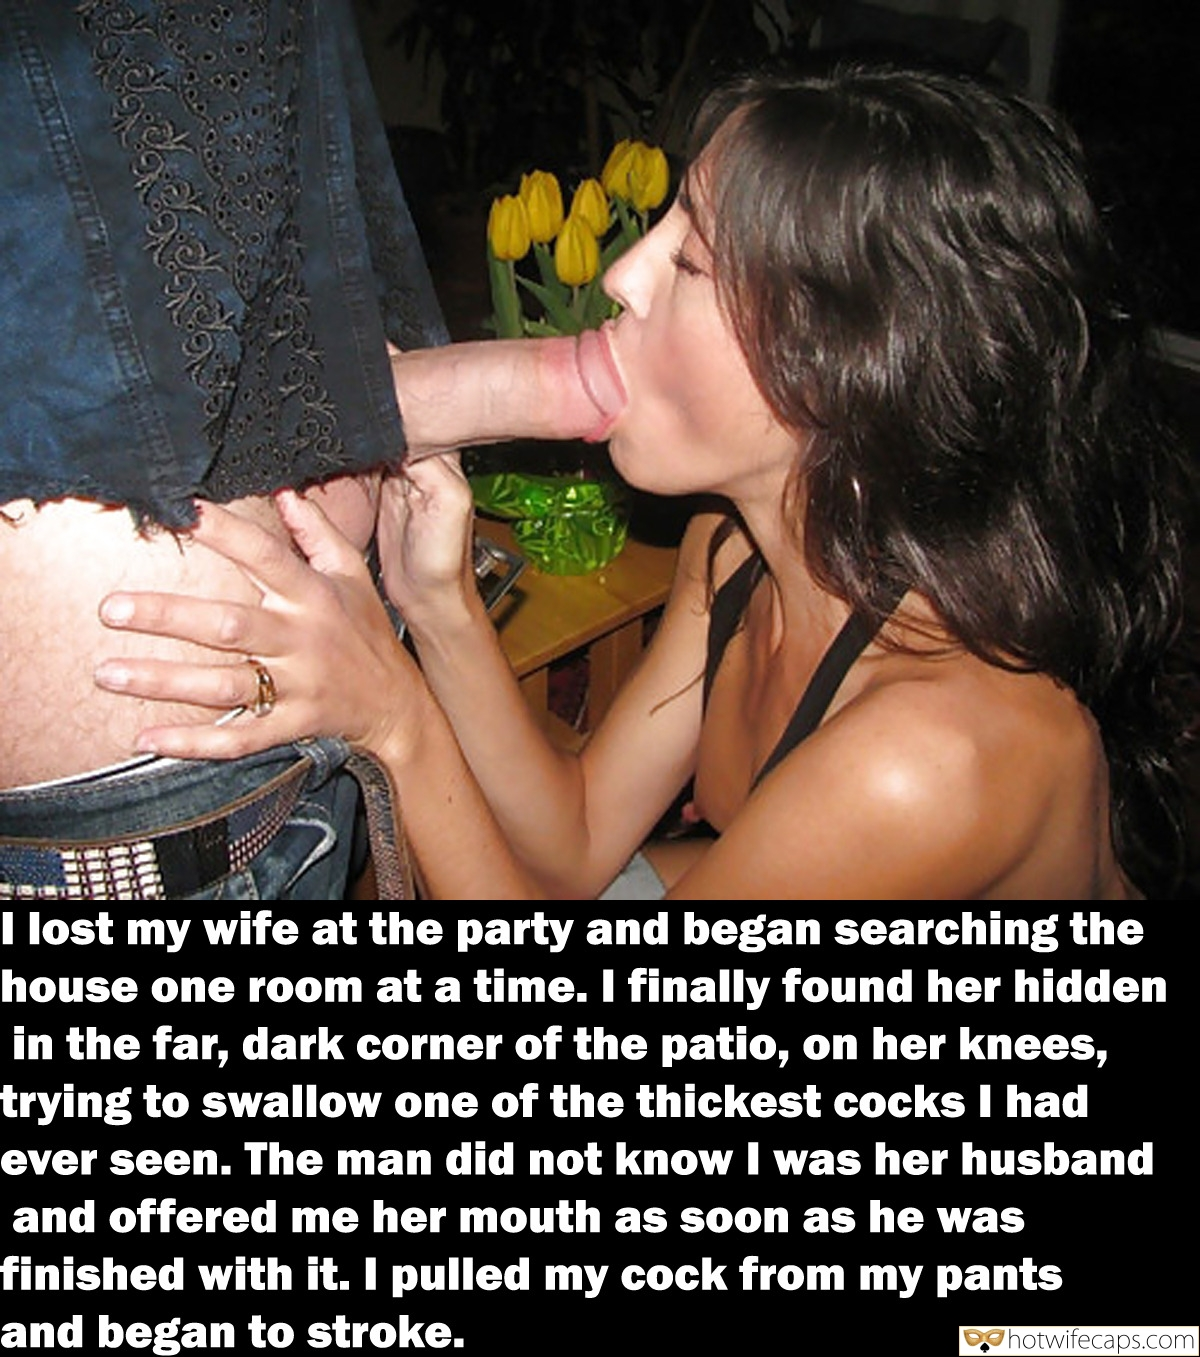 Wife Sharing Public Blowjob Bigger Cock  hotwife caption: I lost my wife at the party and began searching the house one room at a time. I finally found her hidden in the far, dark corner of the patio, on her knees, trying to swallow one of the thickest...